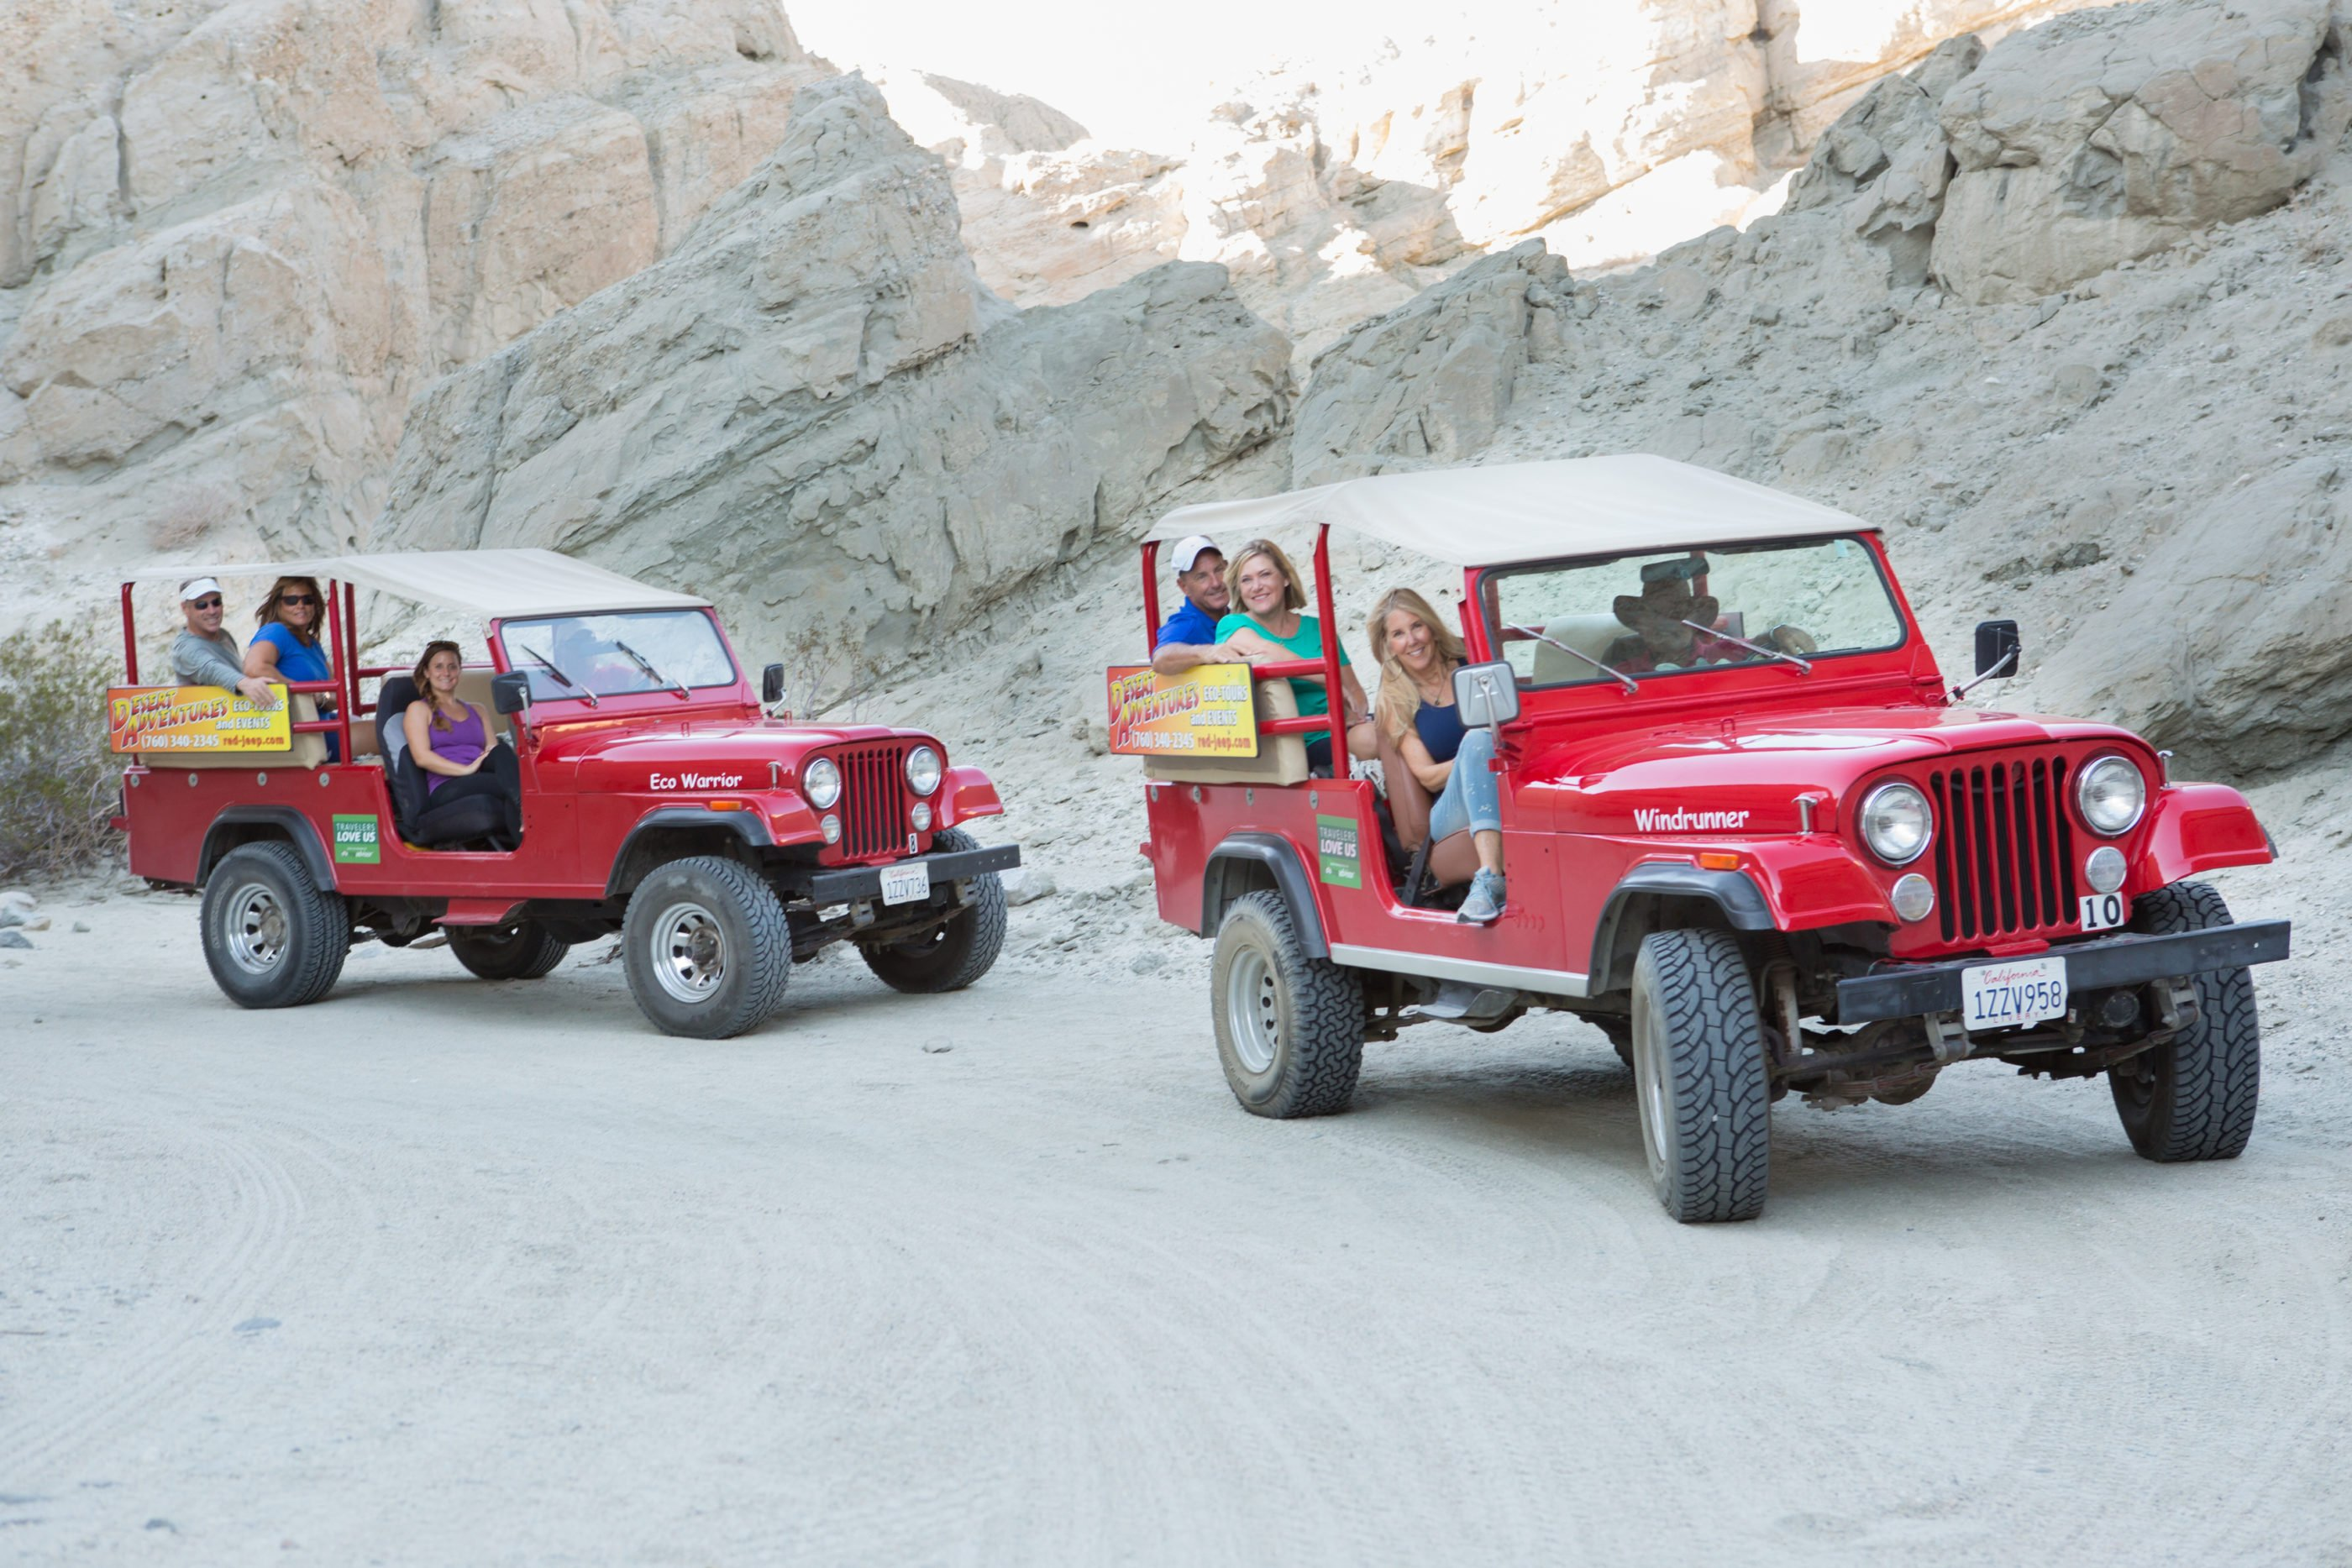 Two red Jeeps full of guests off-road in the desert.